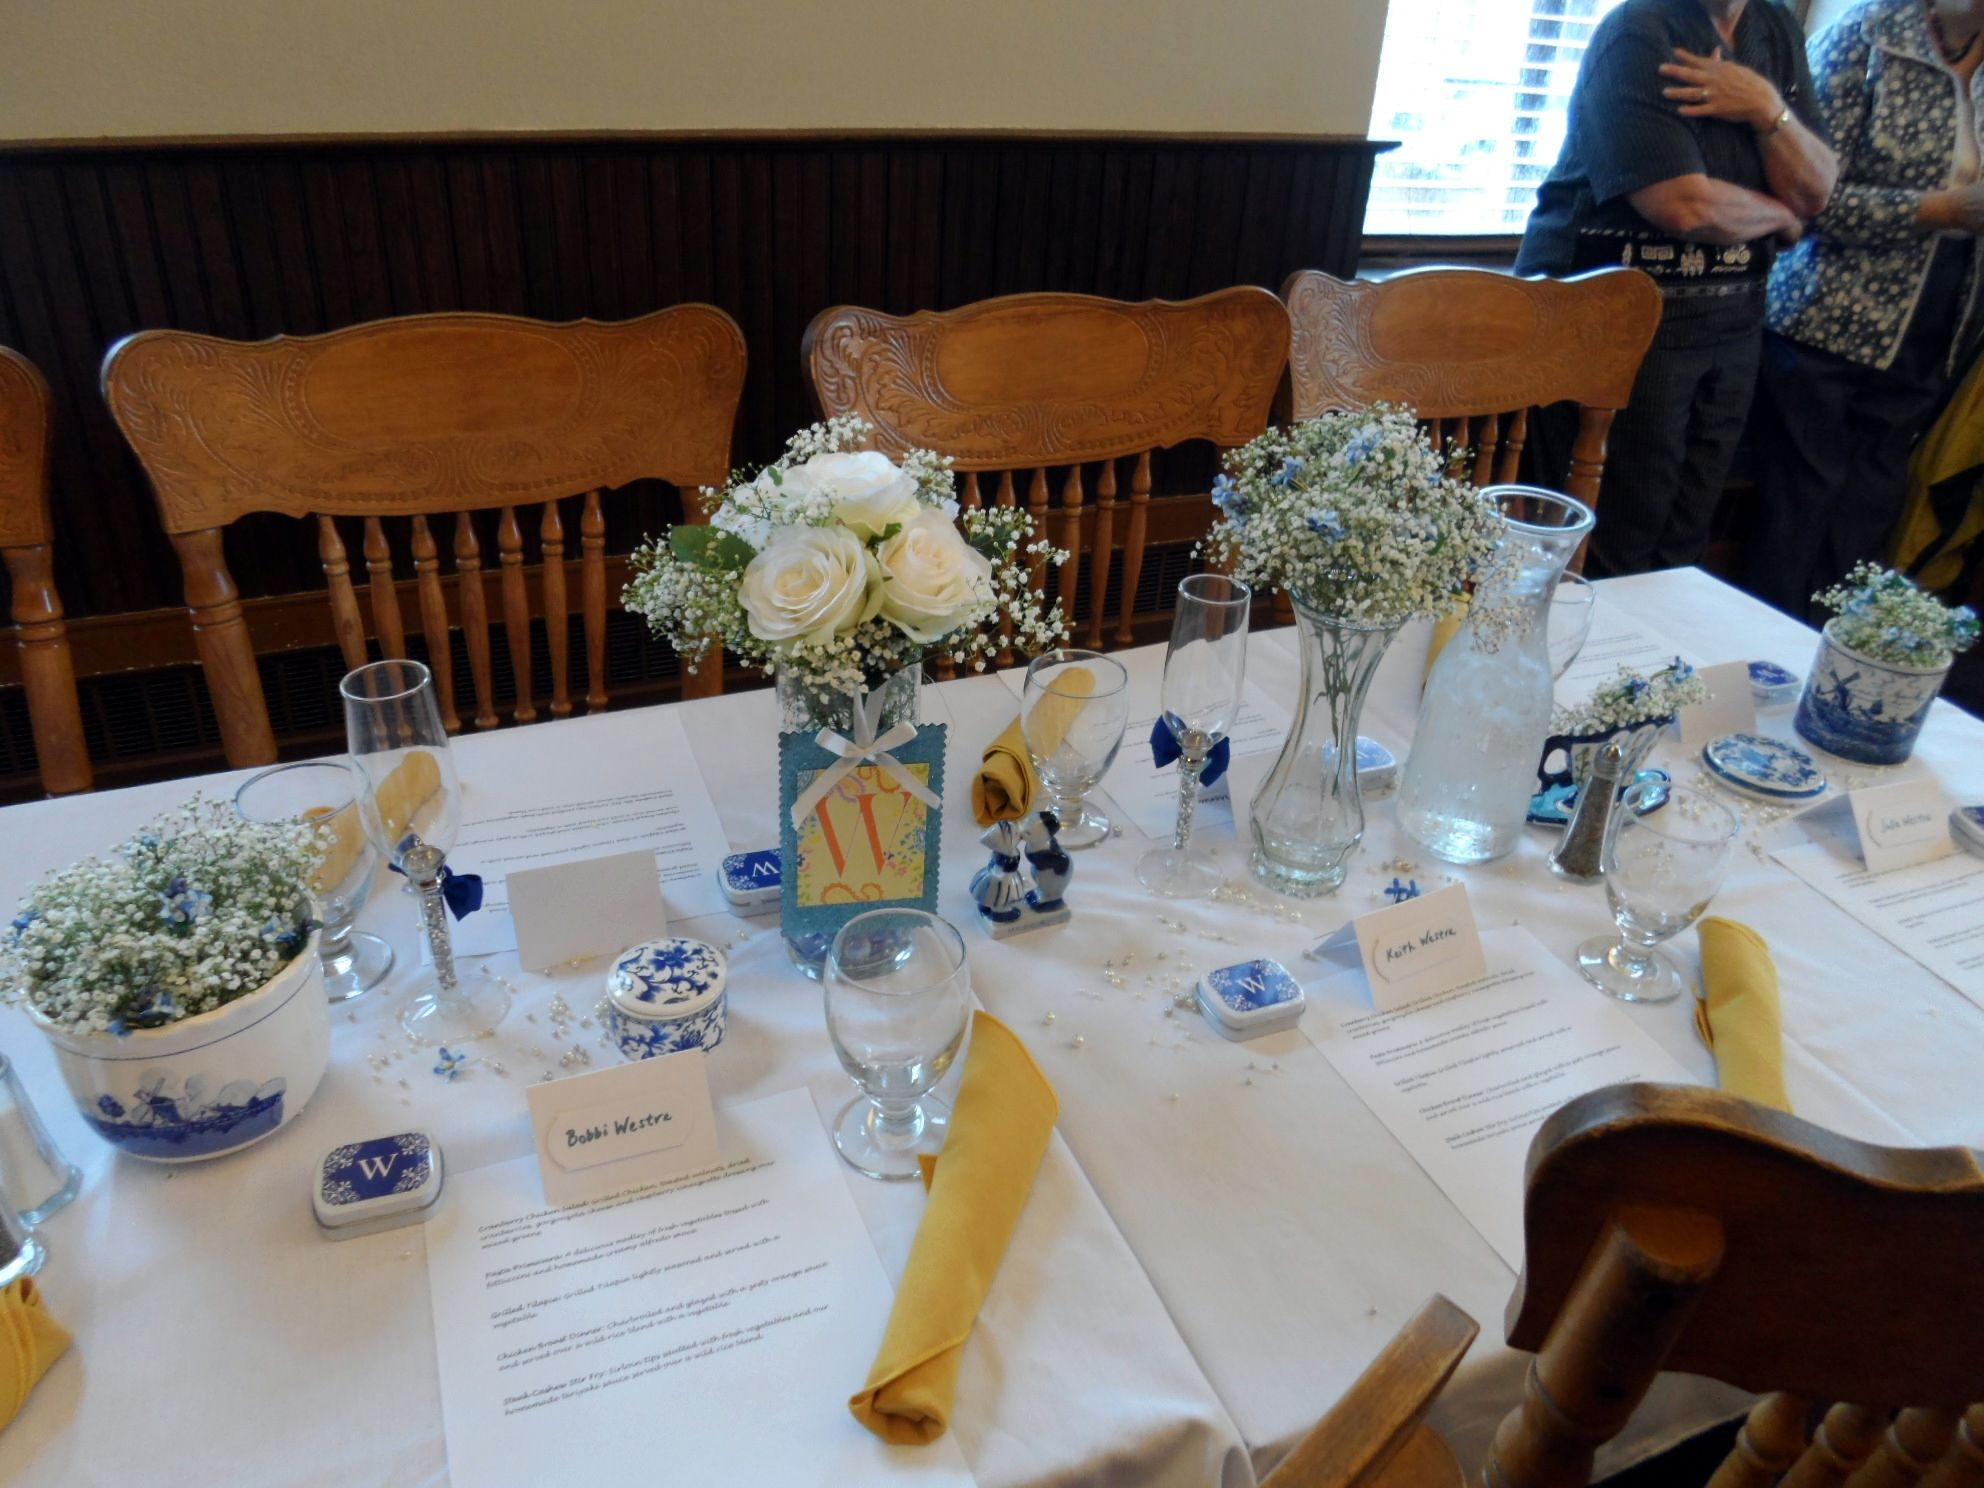 We had hand printed name cards and menus on the table before guests arrived